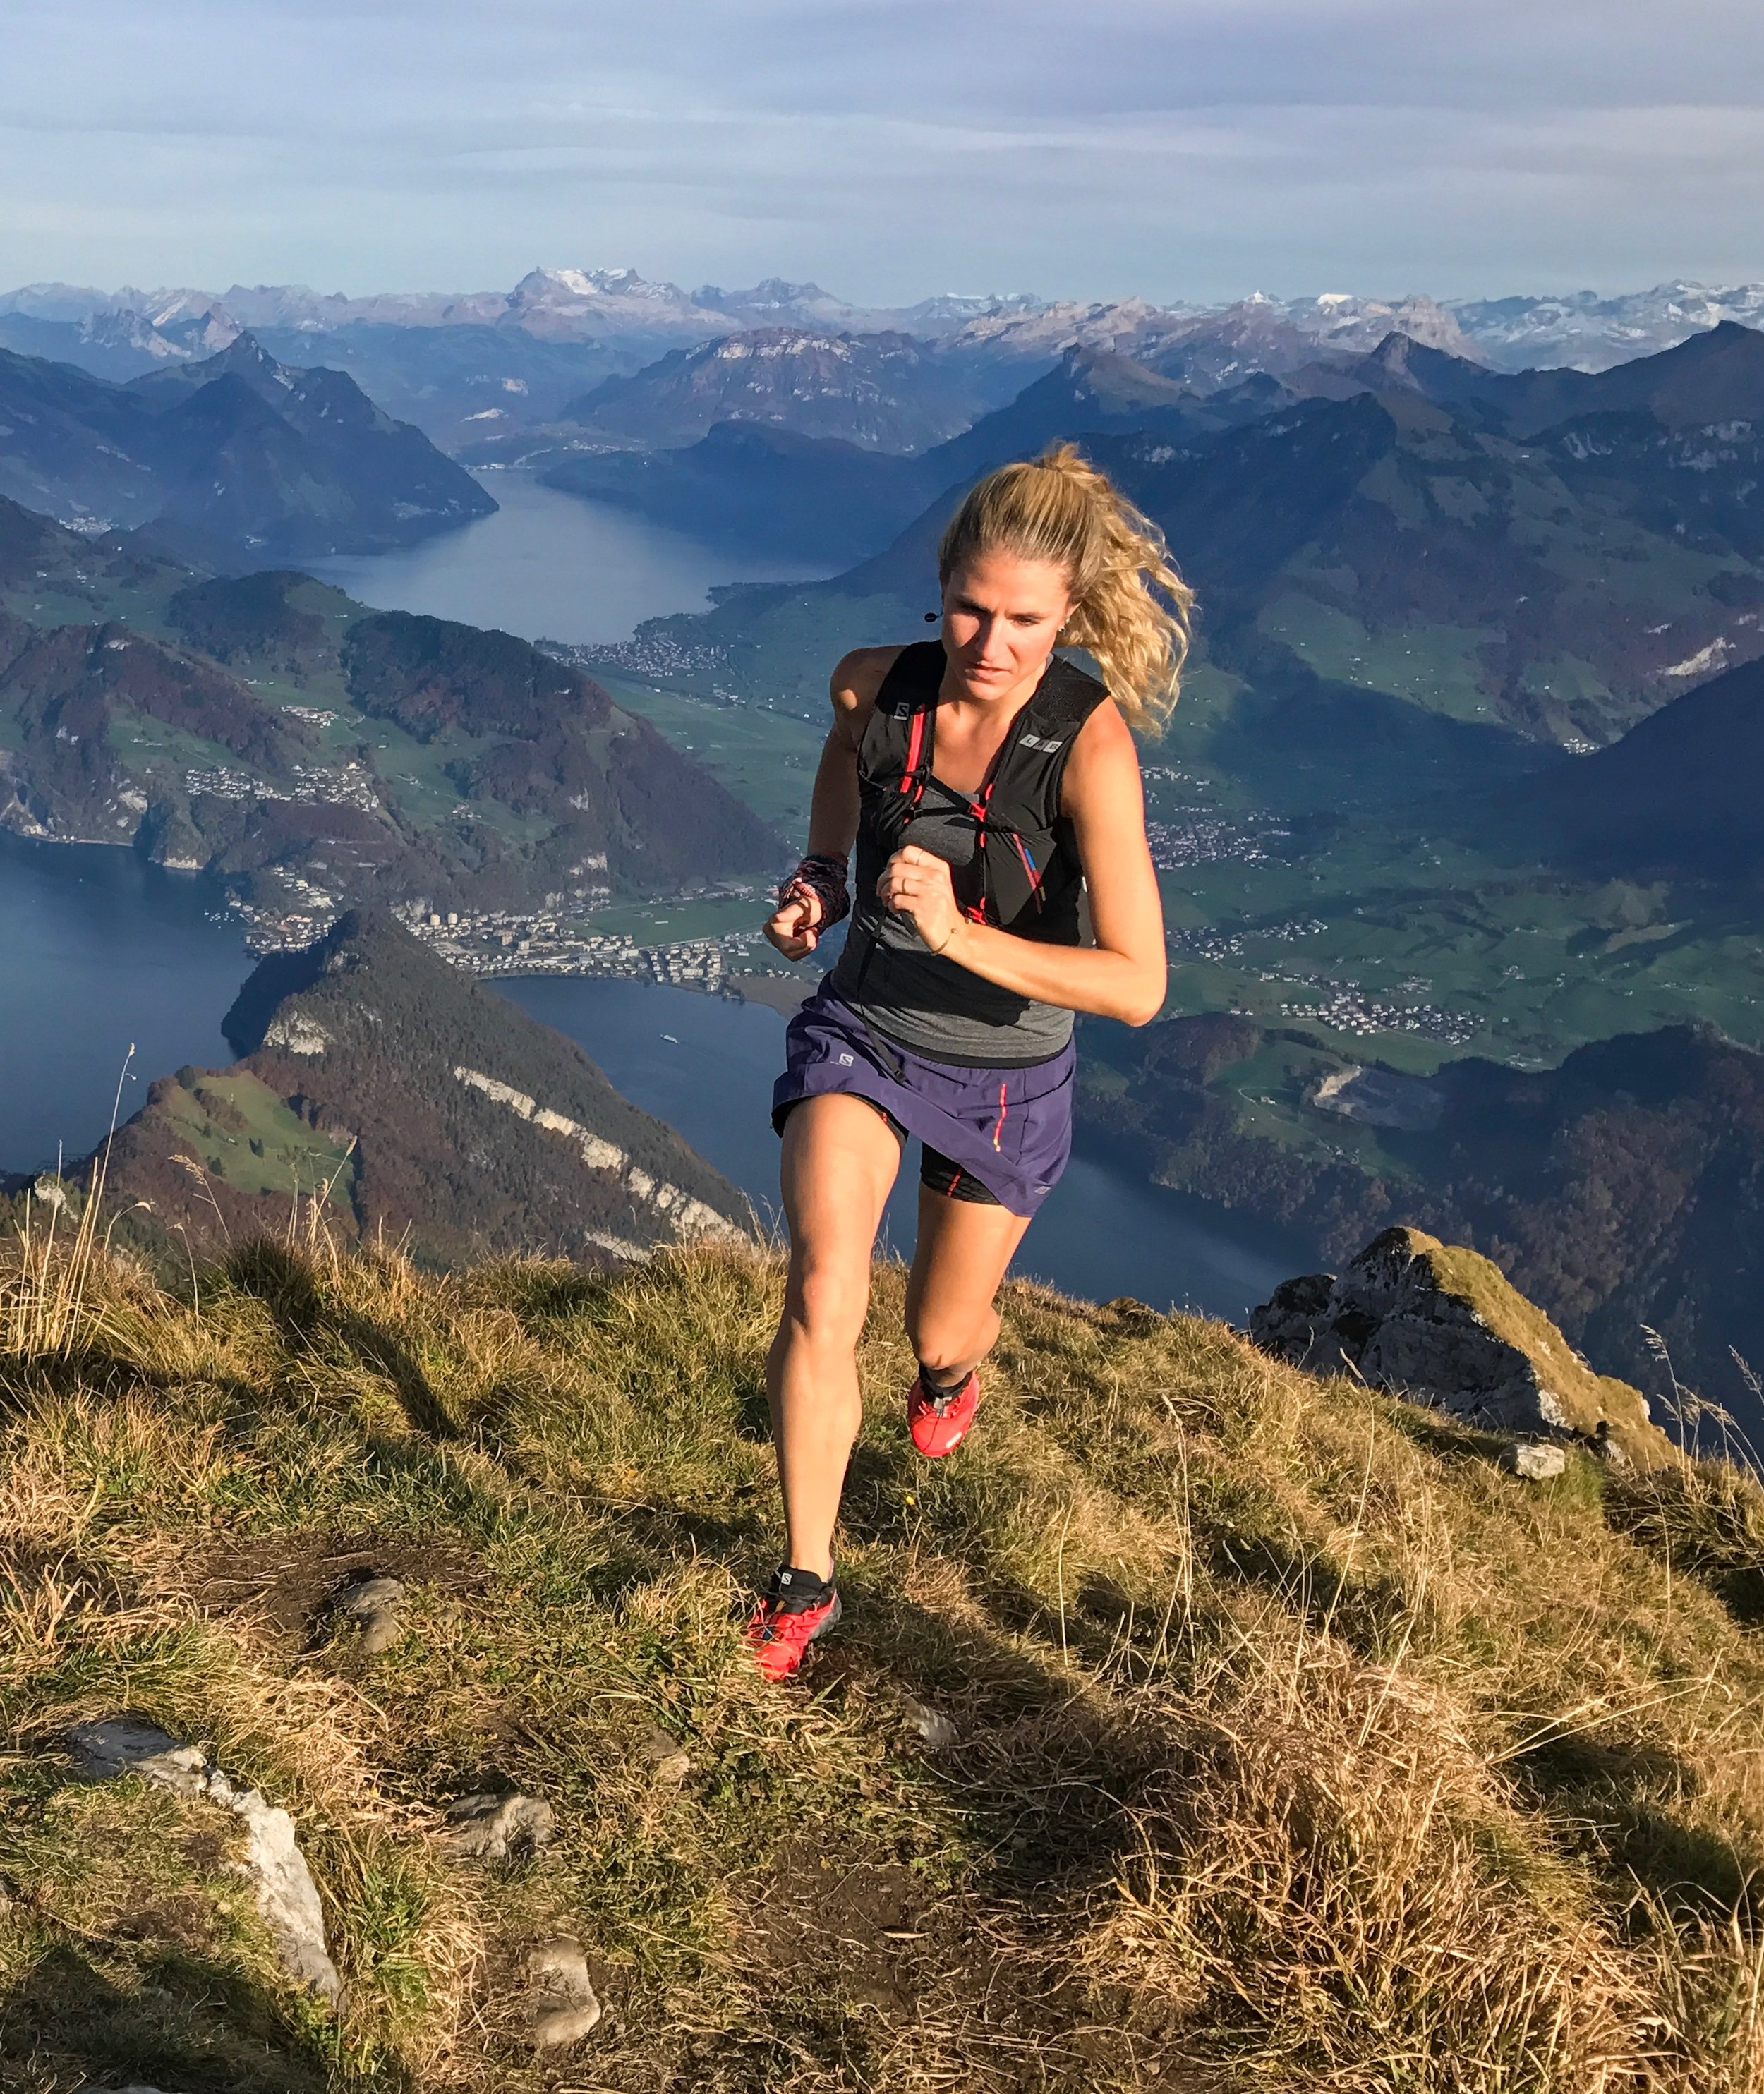 Running on Mt Pilatus, Switzerland